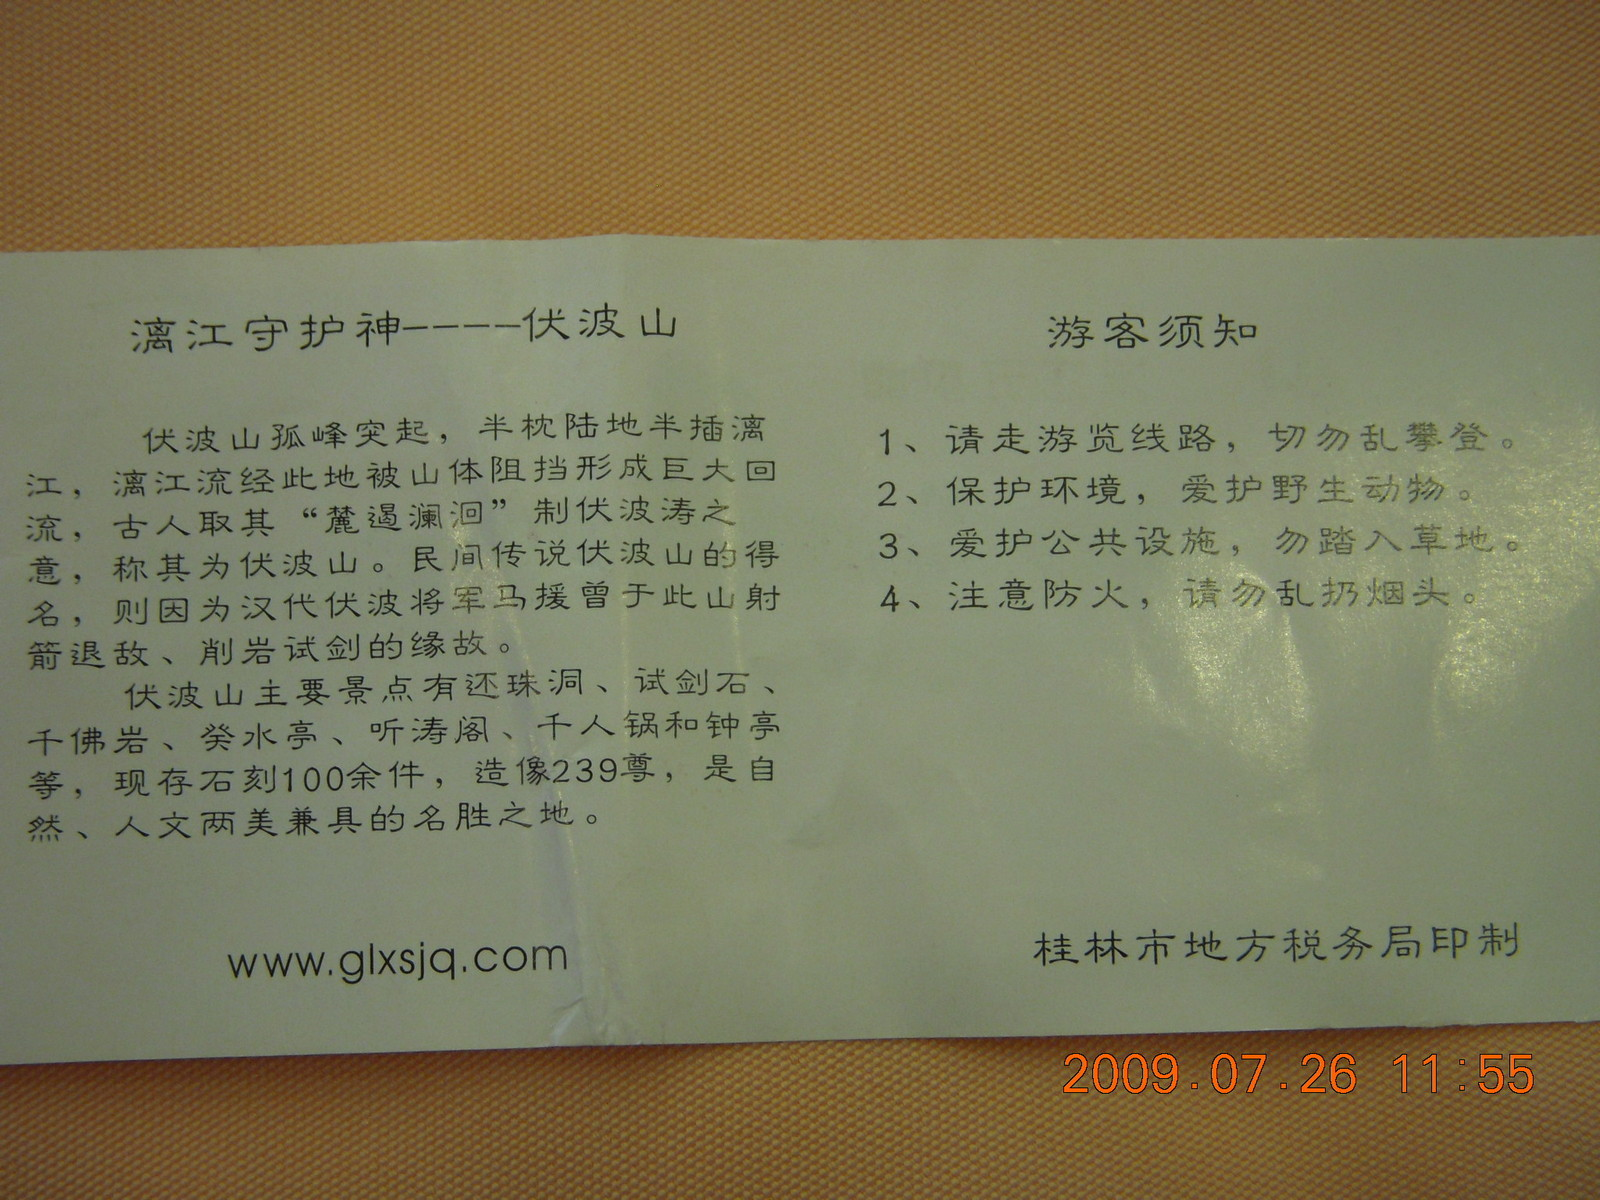 China eclipse - Guilin Fubo Hill ticket (back)